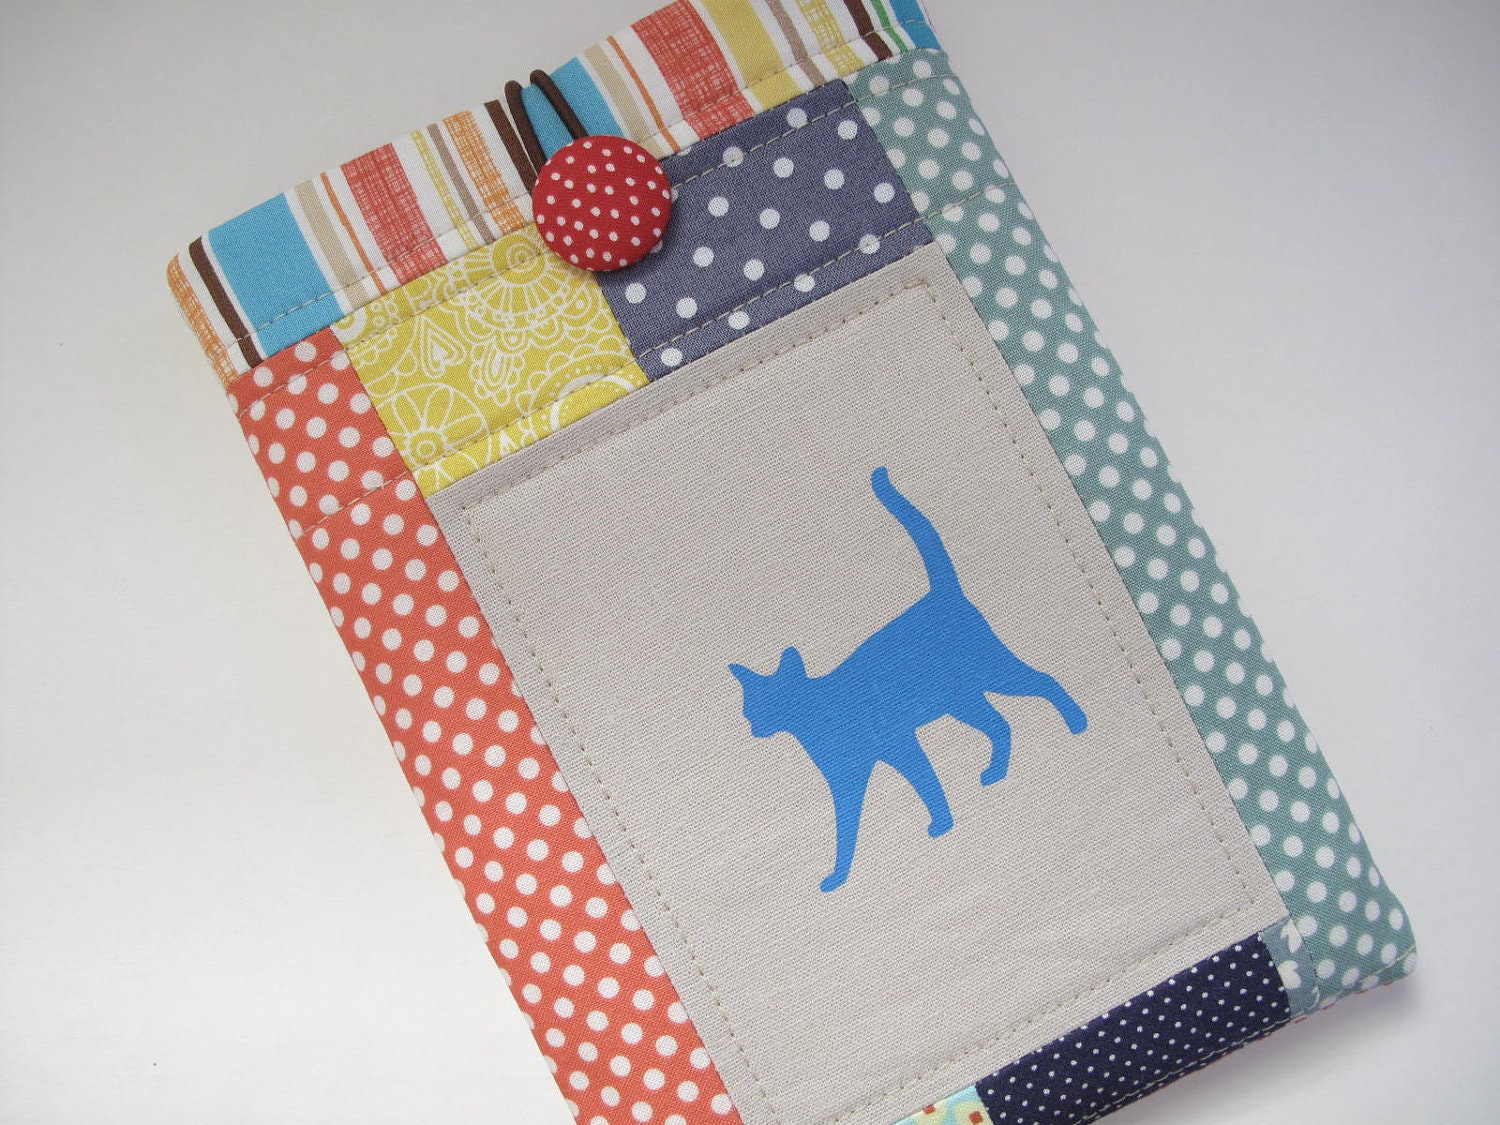 Blue cat screen printed on linen fabric quilted patchwork kindle fire case kindle fire sleeve kindle fire cover